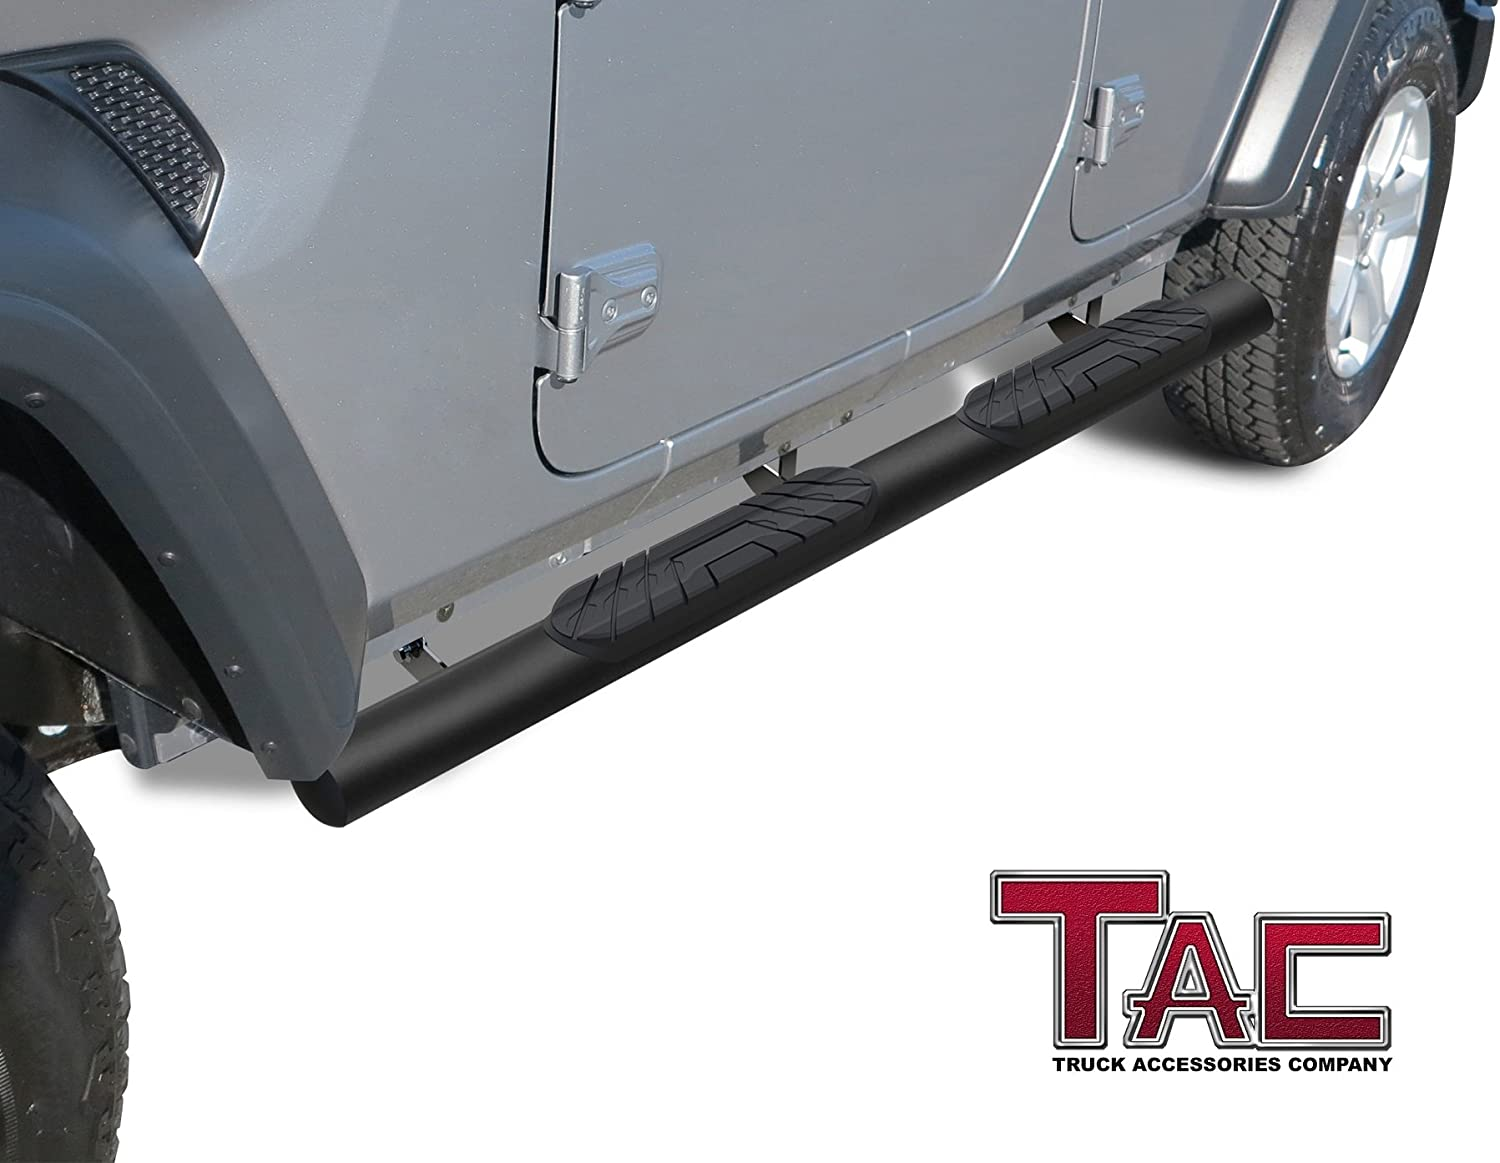 TAC Side Steps Running Boards Fit 2018-2020 Jeep Wrangler JL 4 Door SUV 4 inches Oval Texture Black Side Bars Step Rails Nerf Bars Rocker Panel Off Road Accessories 2 Pieces Running Boards